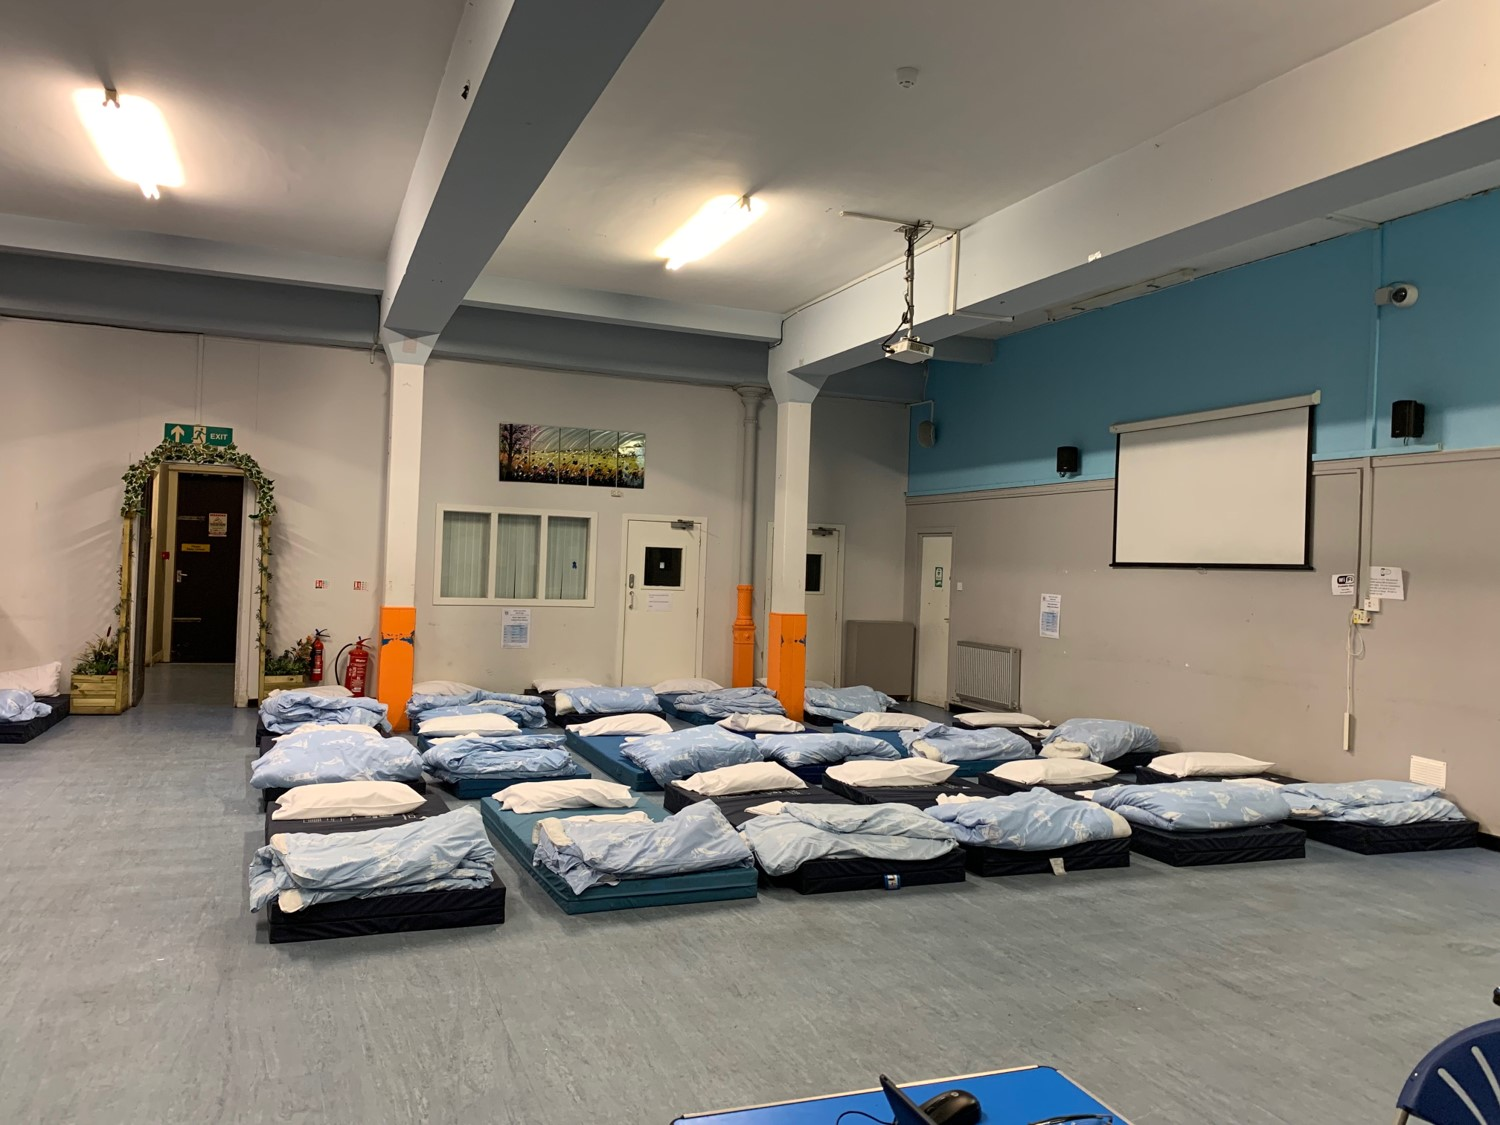 Glasgow Winter Night shelter